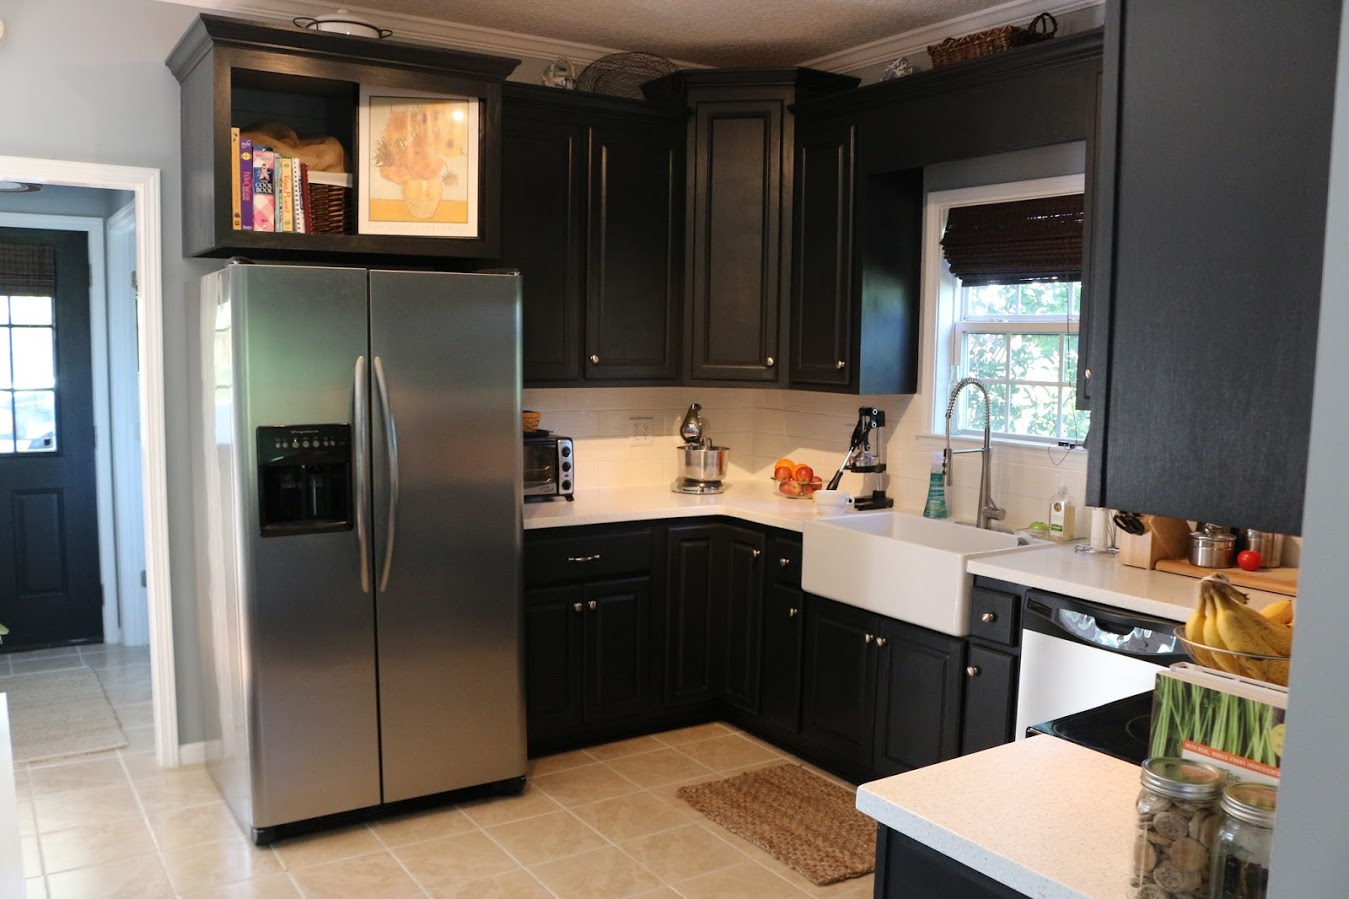 Allen And Roth Backsplash Part - 47: Now Weu0027re Talking About Adding Can Lighting! The Black Does Darken Up The  Space A Bit More And Weu0027d Discussed This In The Past, So I Think This Is  Yet ...